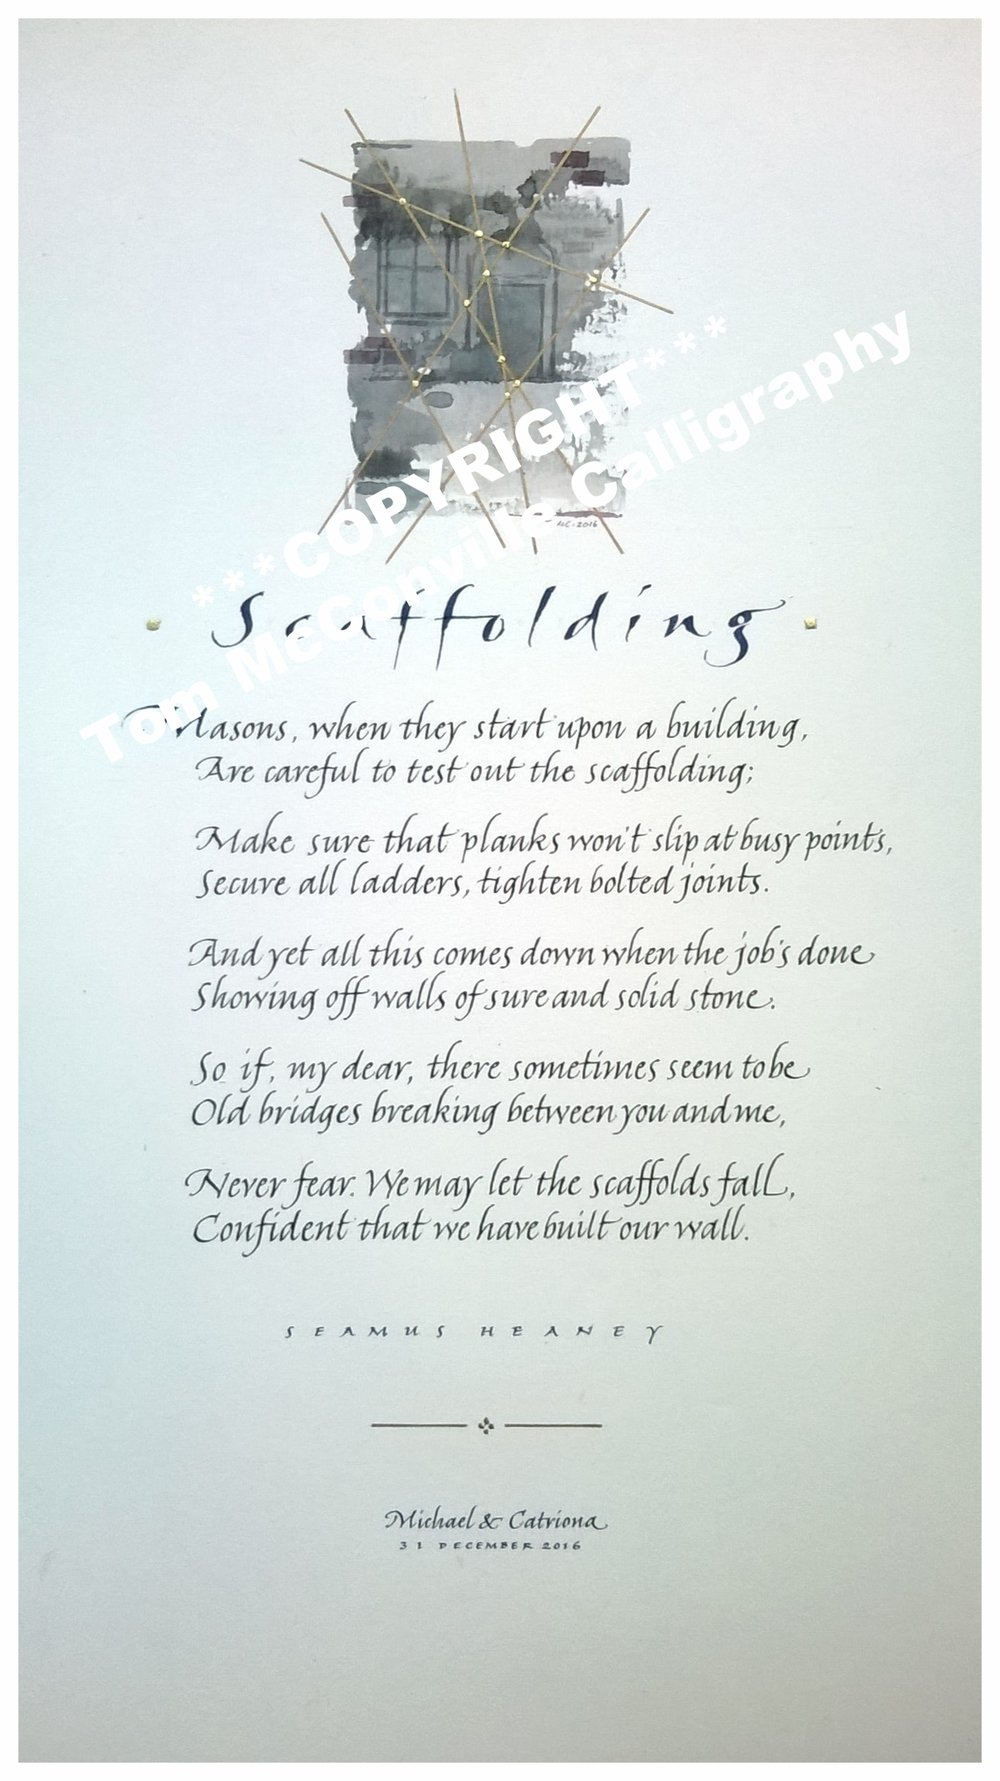 'Scaffolding' by Seamus Heaney